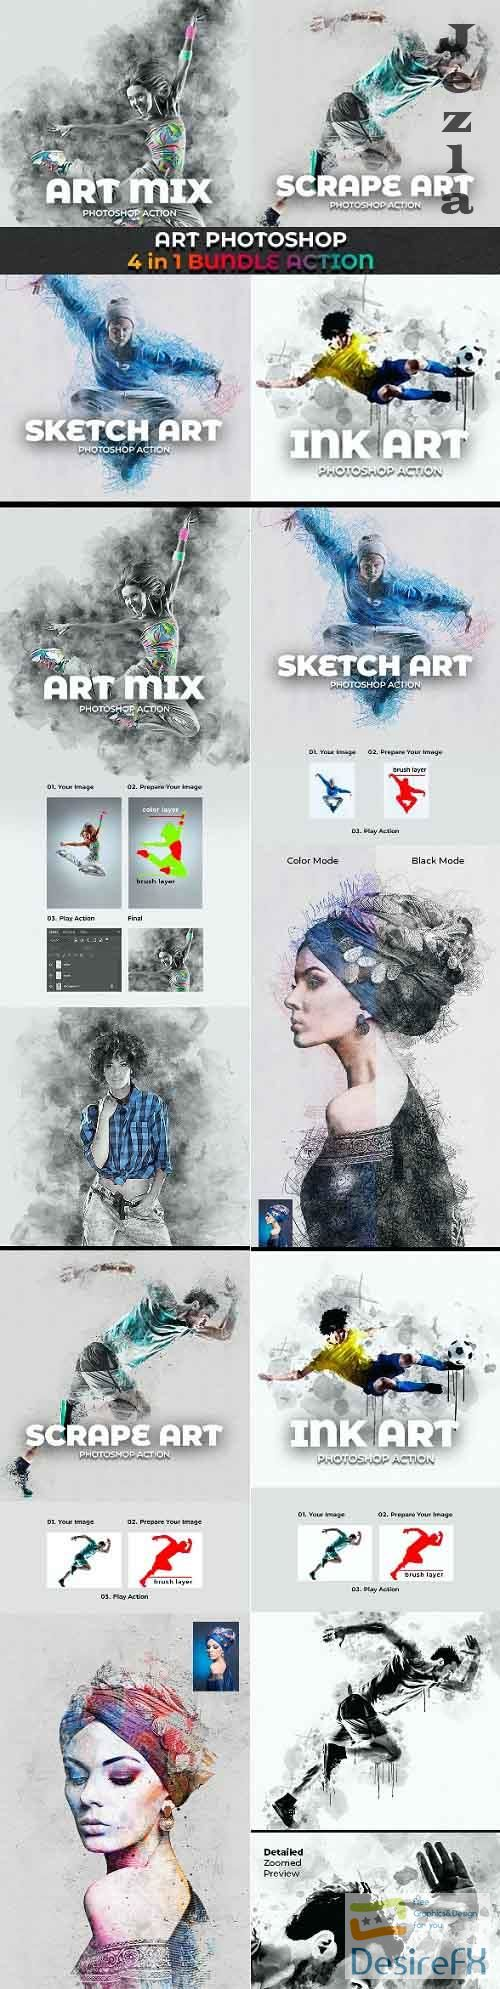 GraphicRiver - Art Photoshop Action 4 in 1 Bundle 29133173